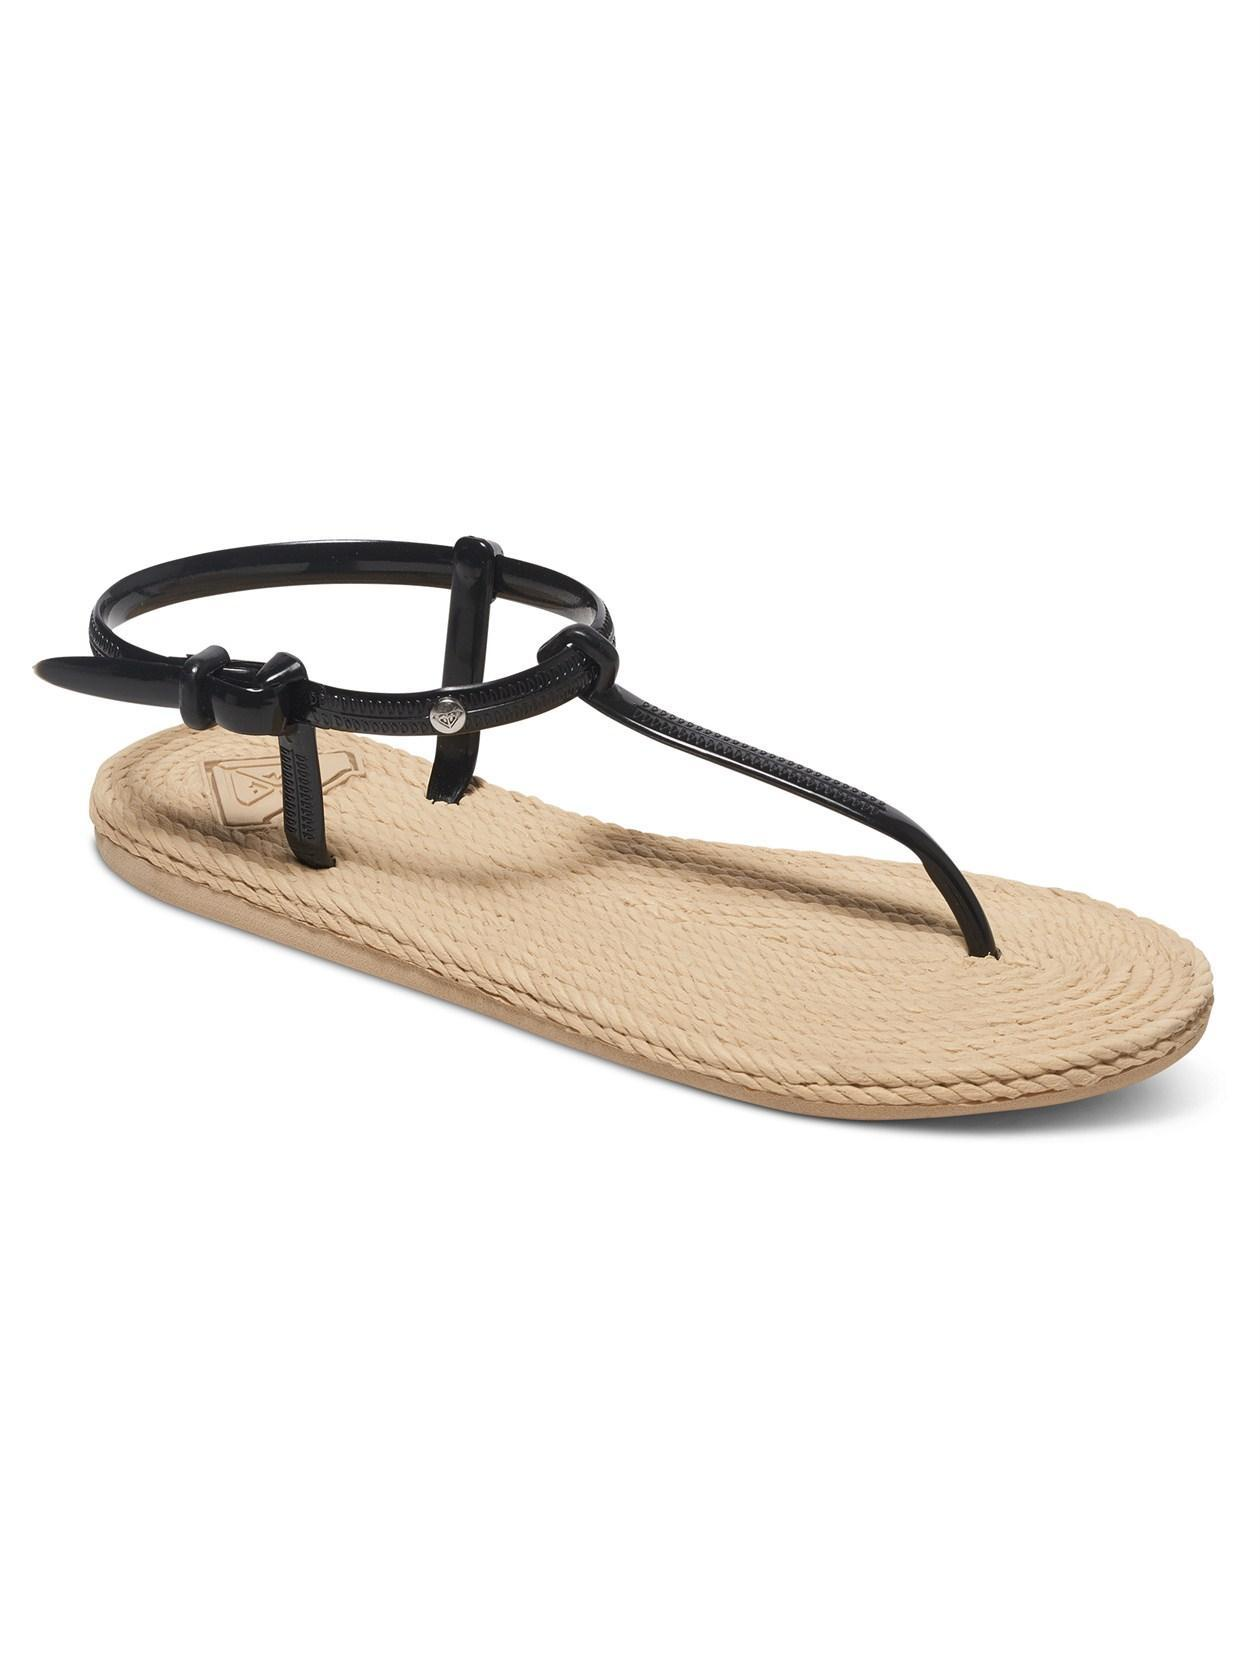 5e8c8bbe17e8 Roxy South Beach T-Strap Sandal - Out There Surf